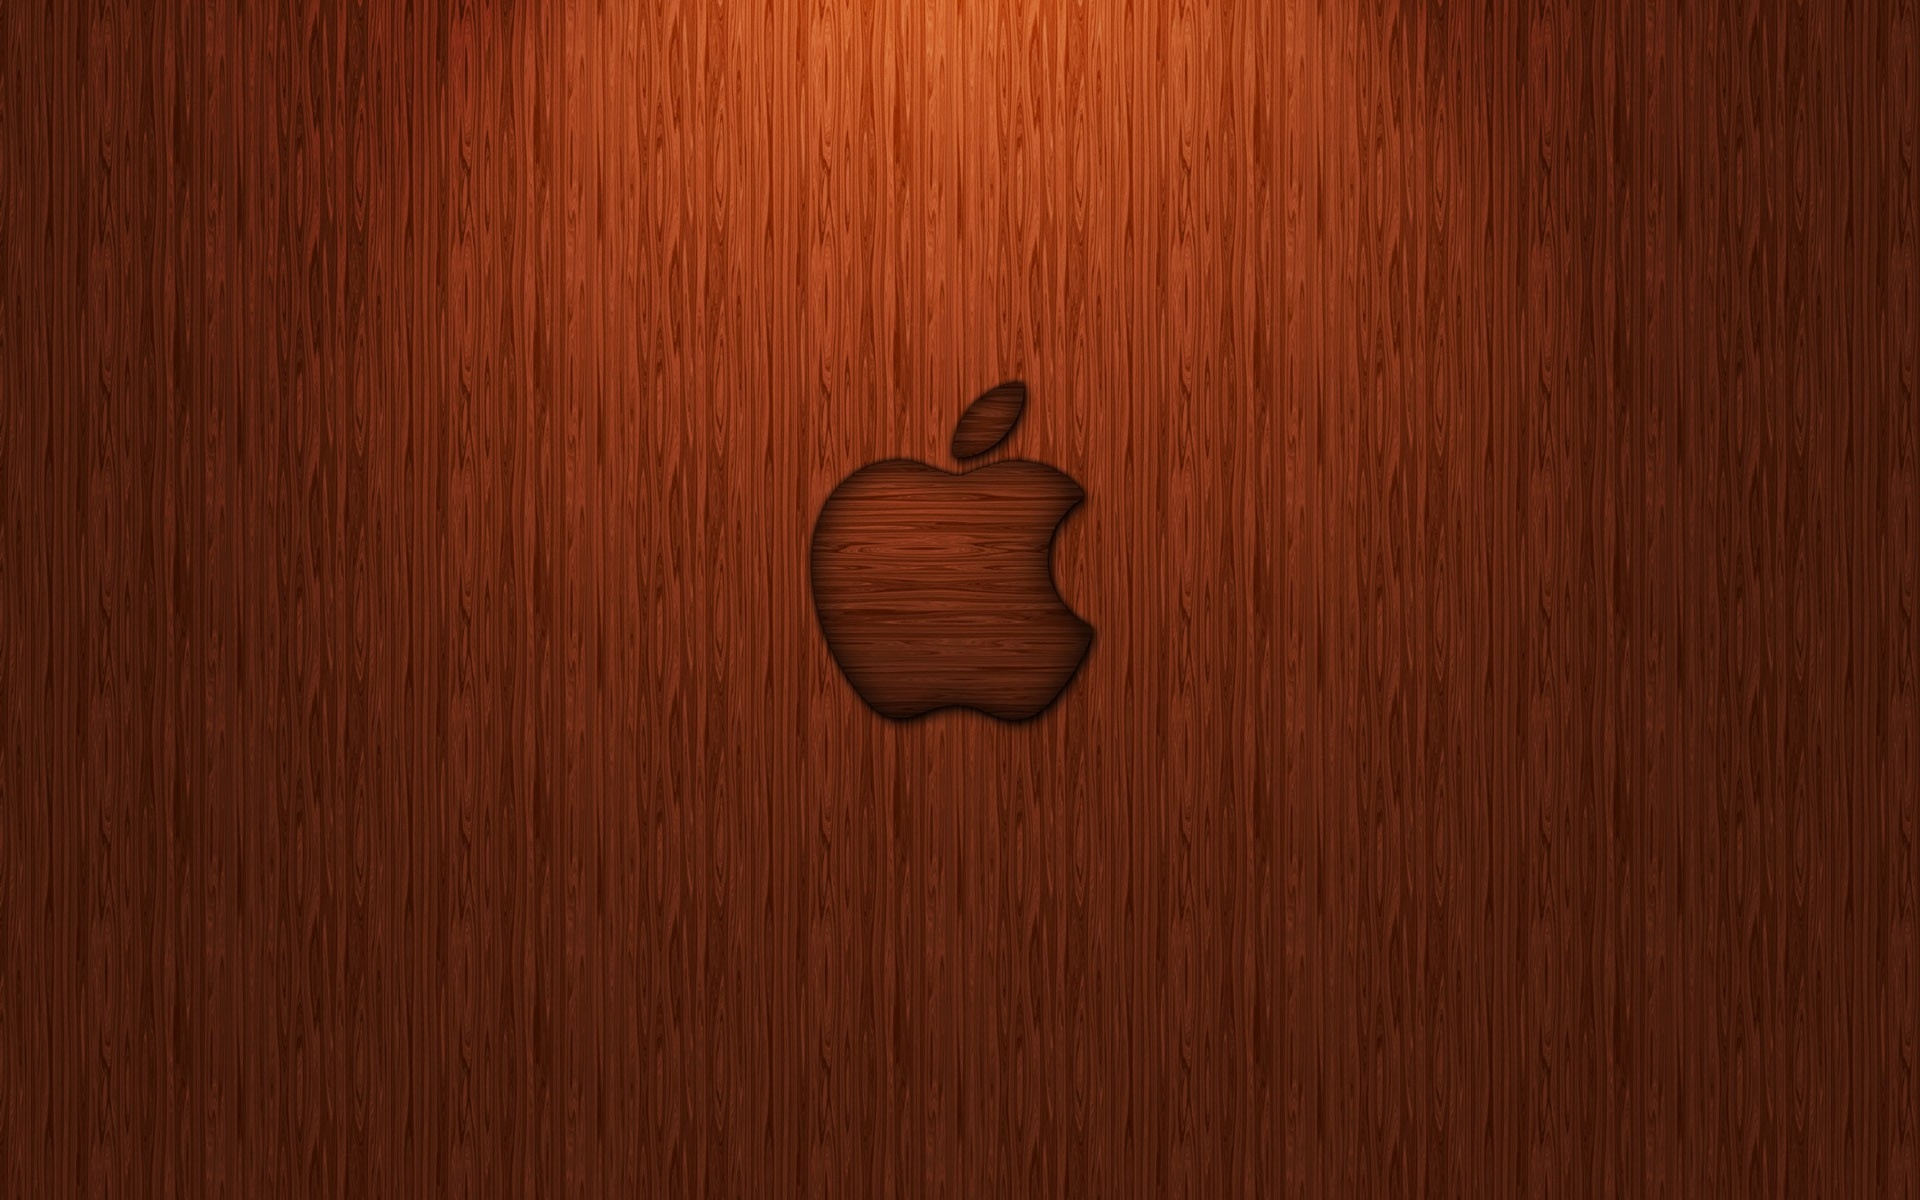 Wooden Apple Logo Wallpaper